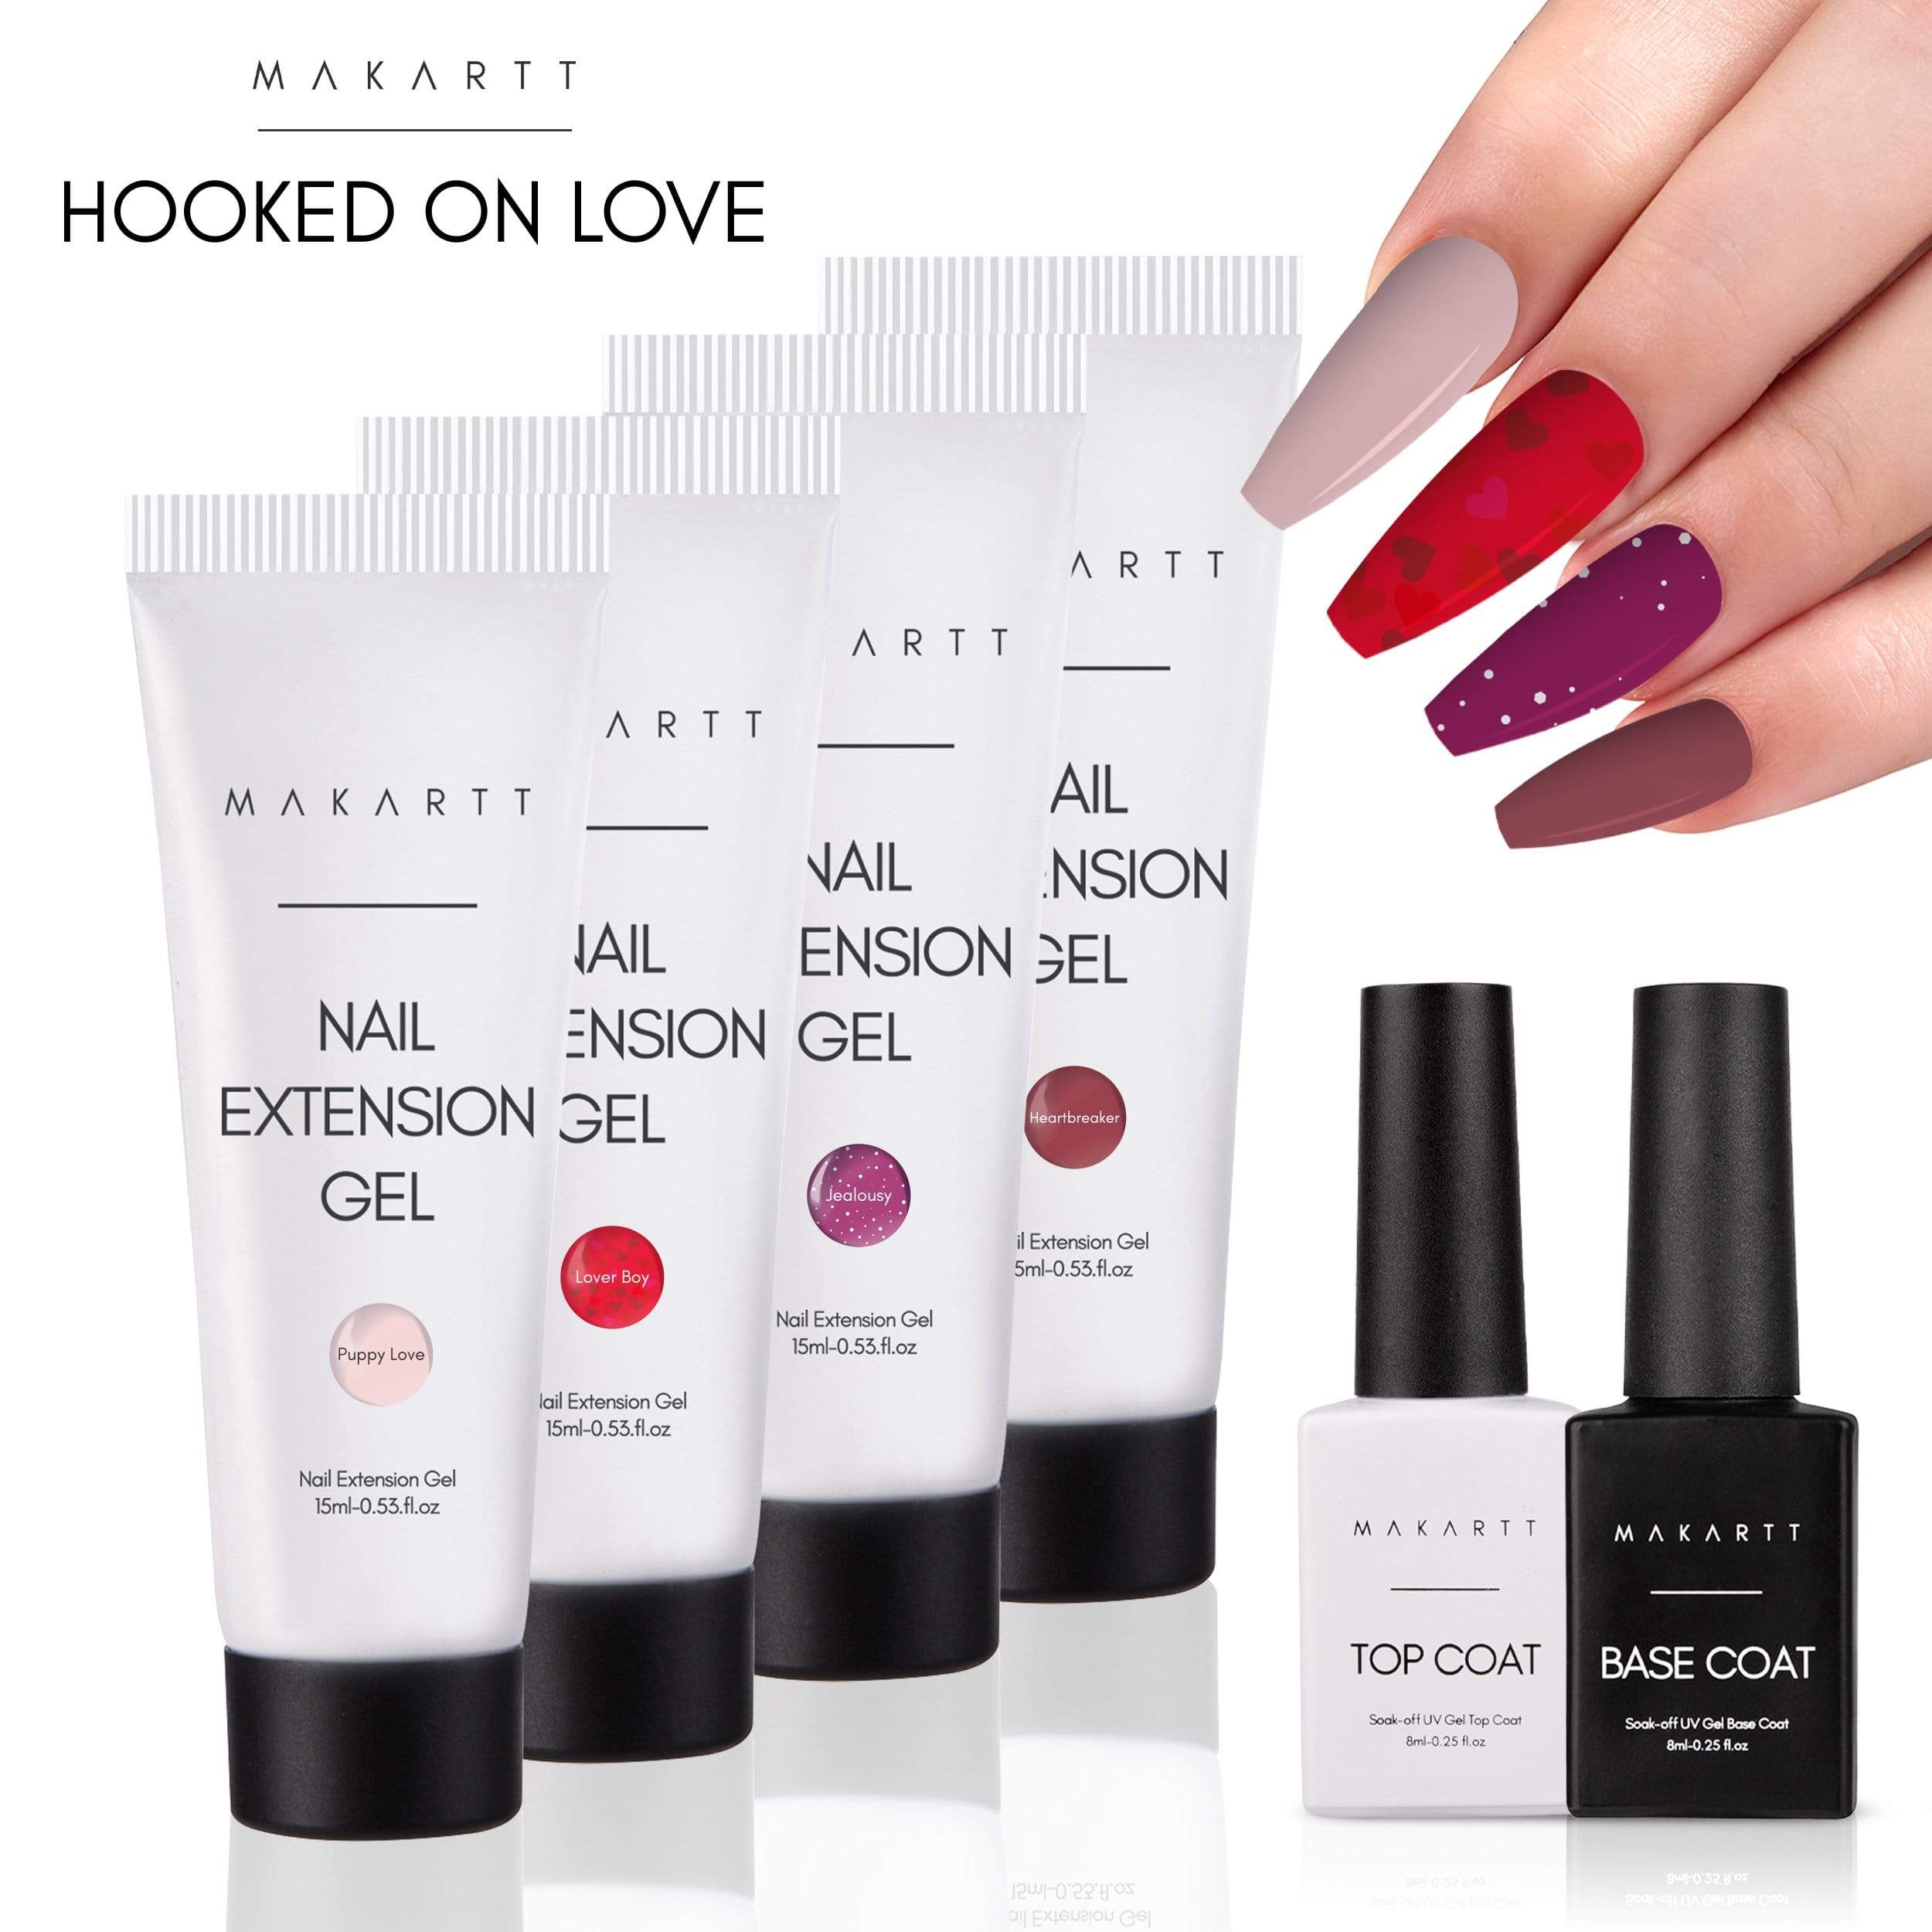 Hooked On Love 4 Color Poly Gel Kit (Limited Edition)